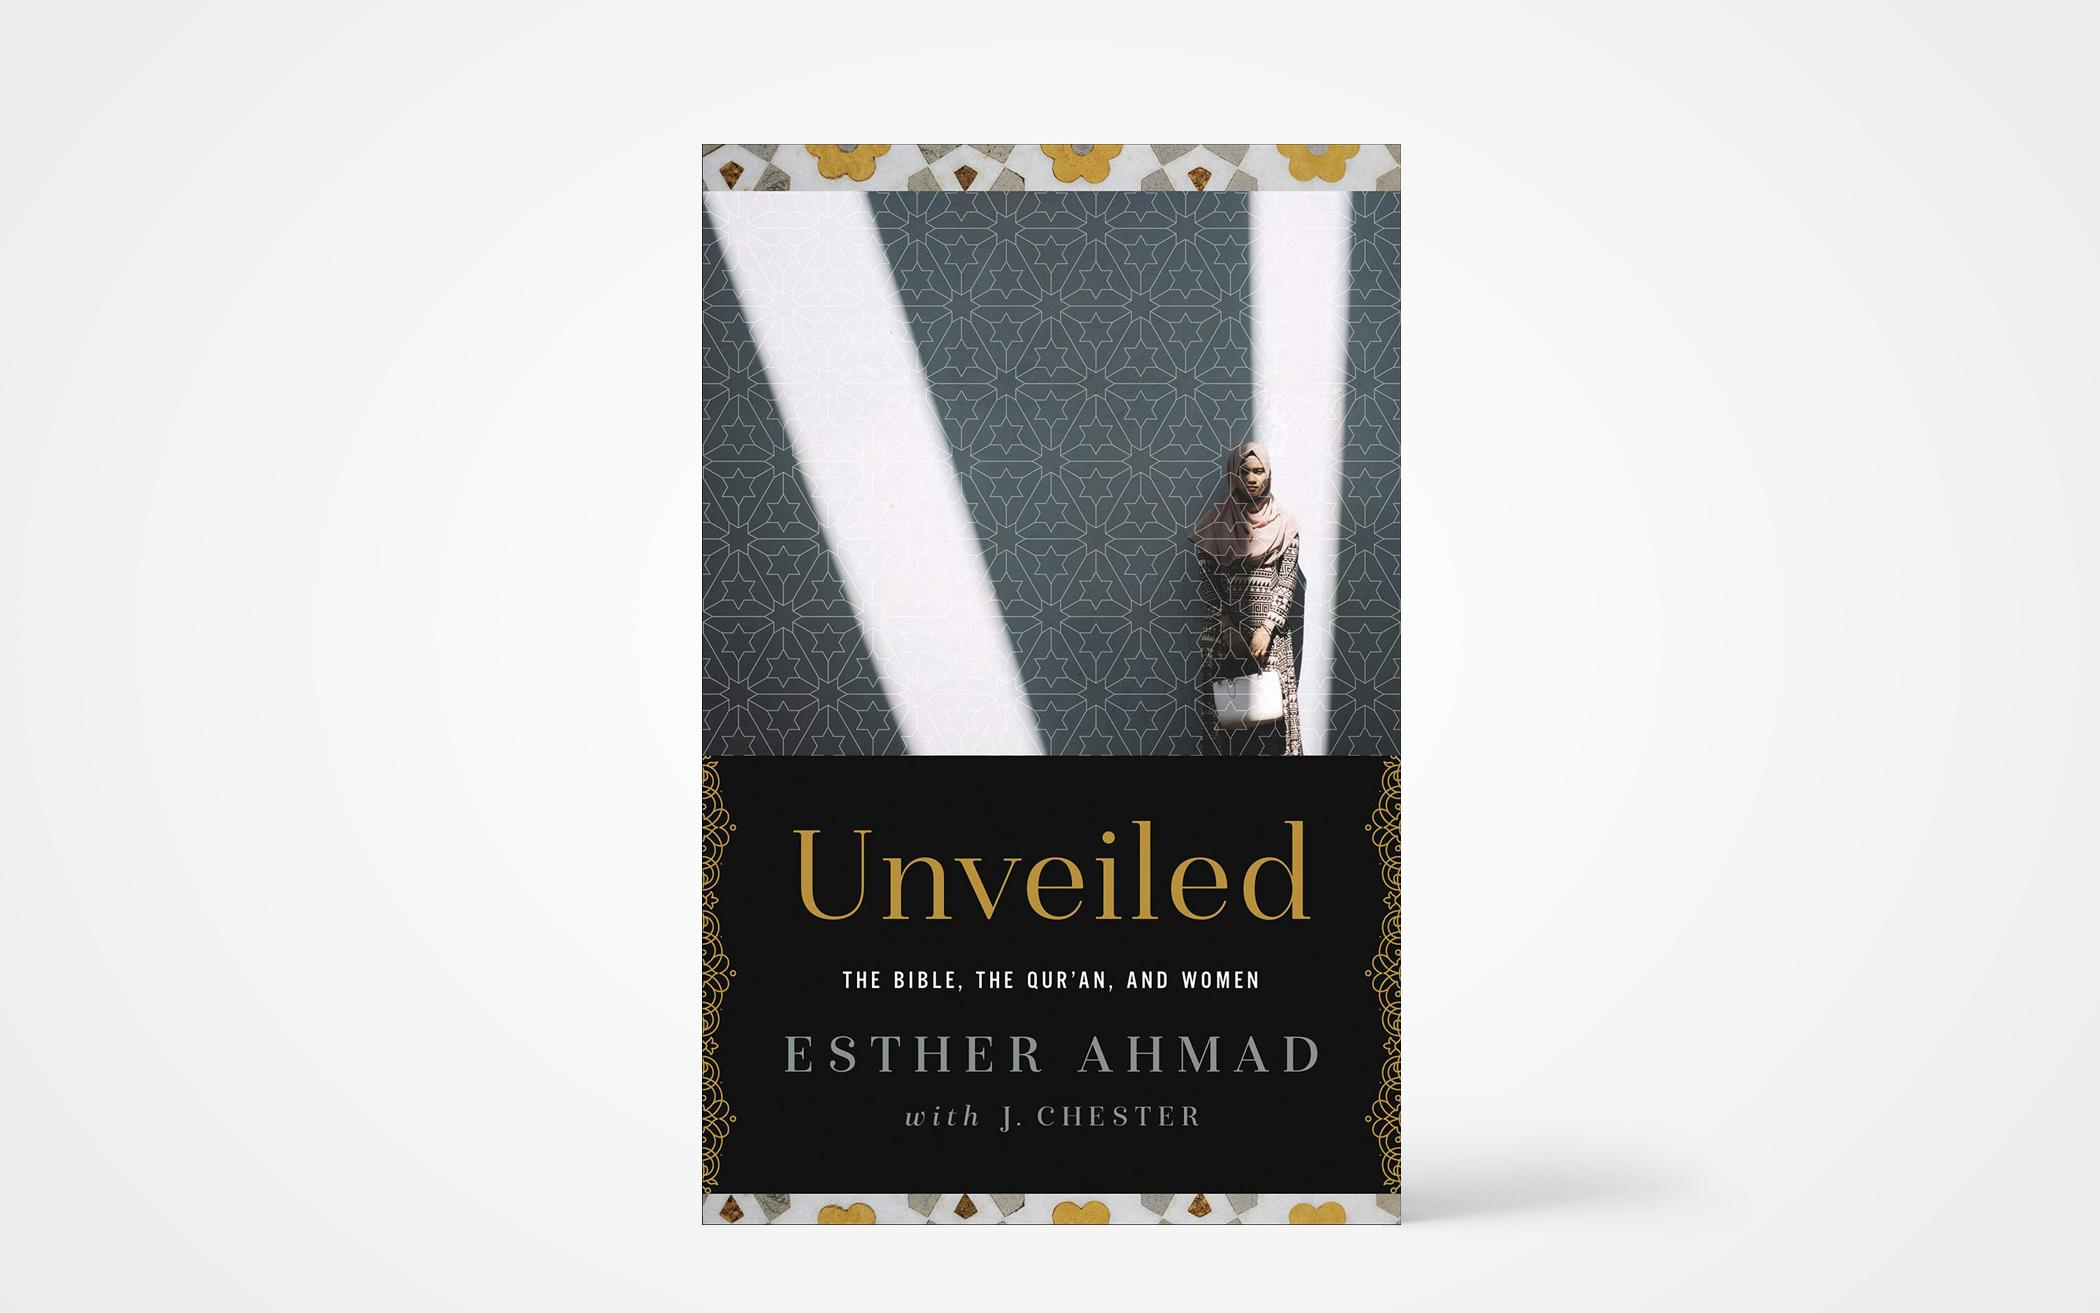 Unveiled: The Bible, The Qur'an, and Women